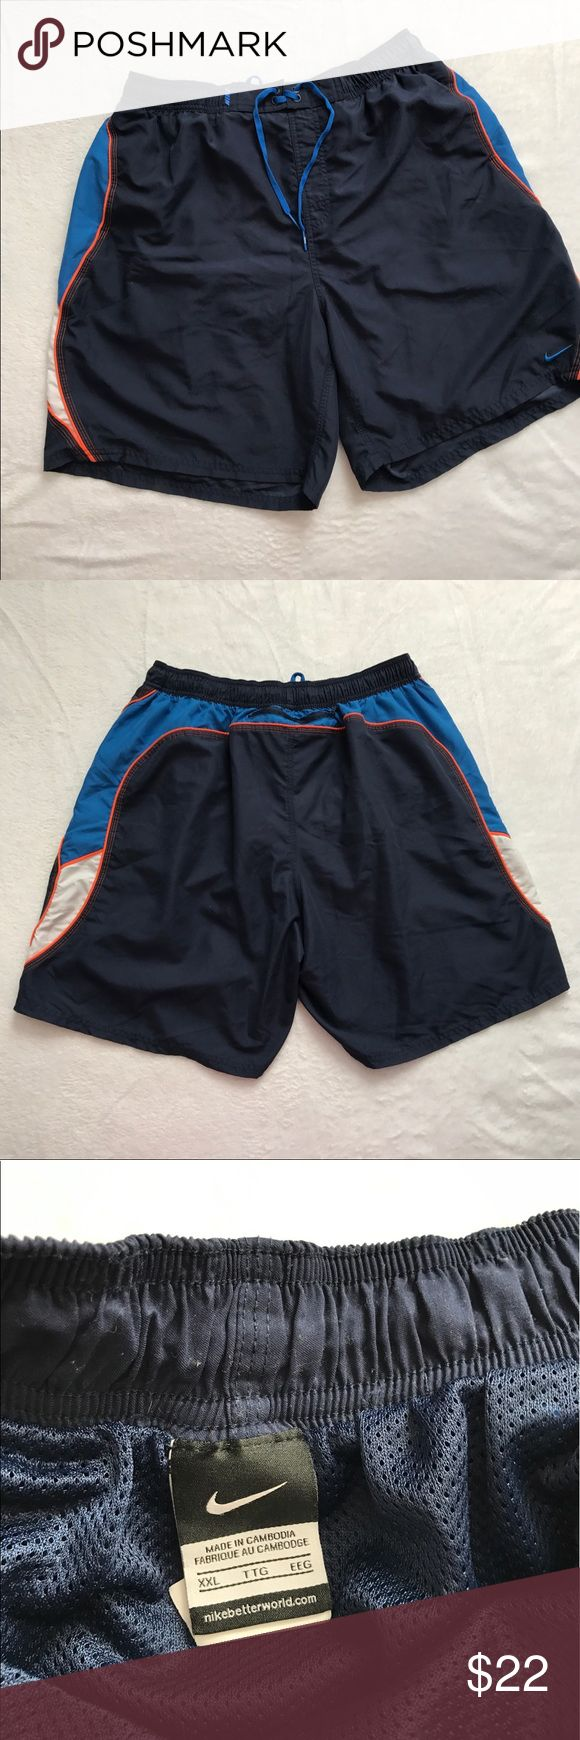 Nike Swim Trunks Navy XXL In excellent condition. They are lined. Tie waist. Nike Swim